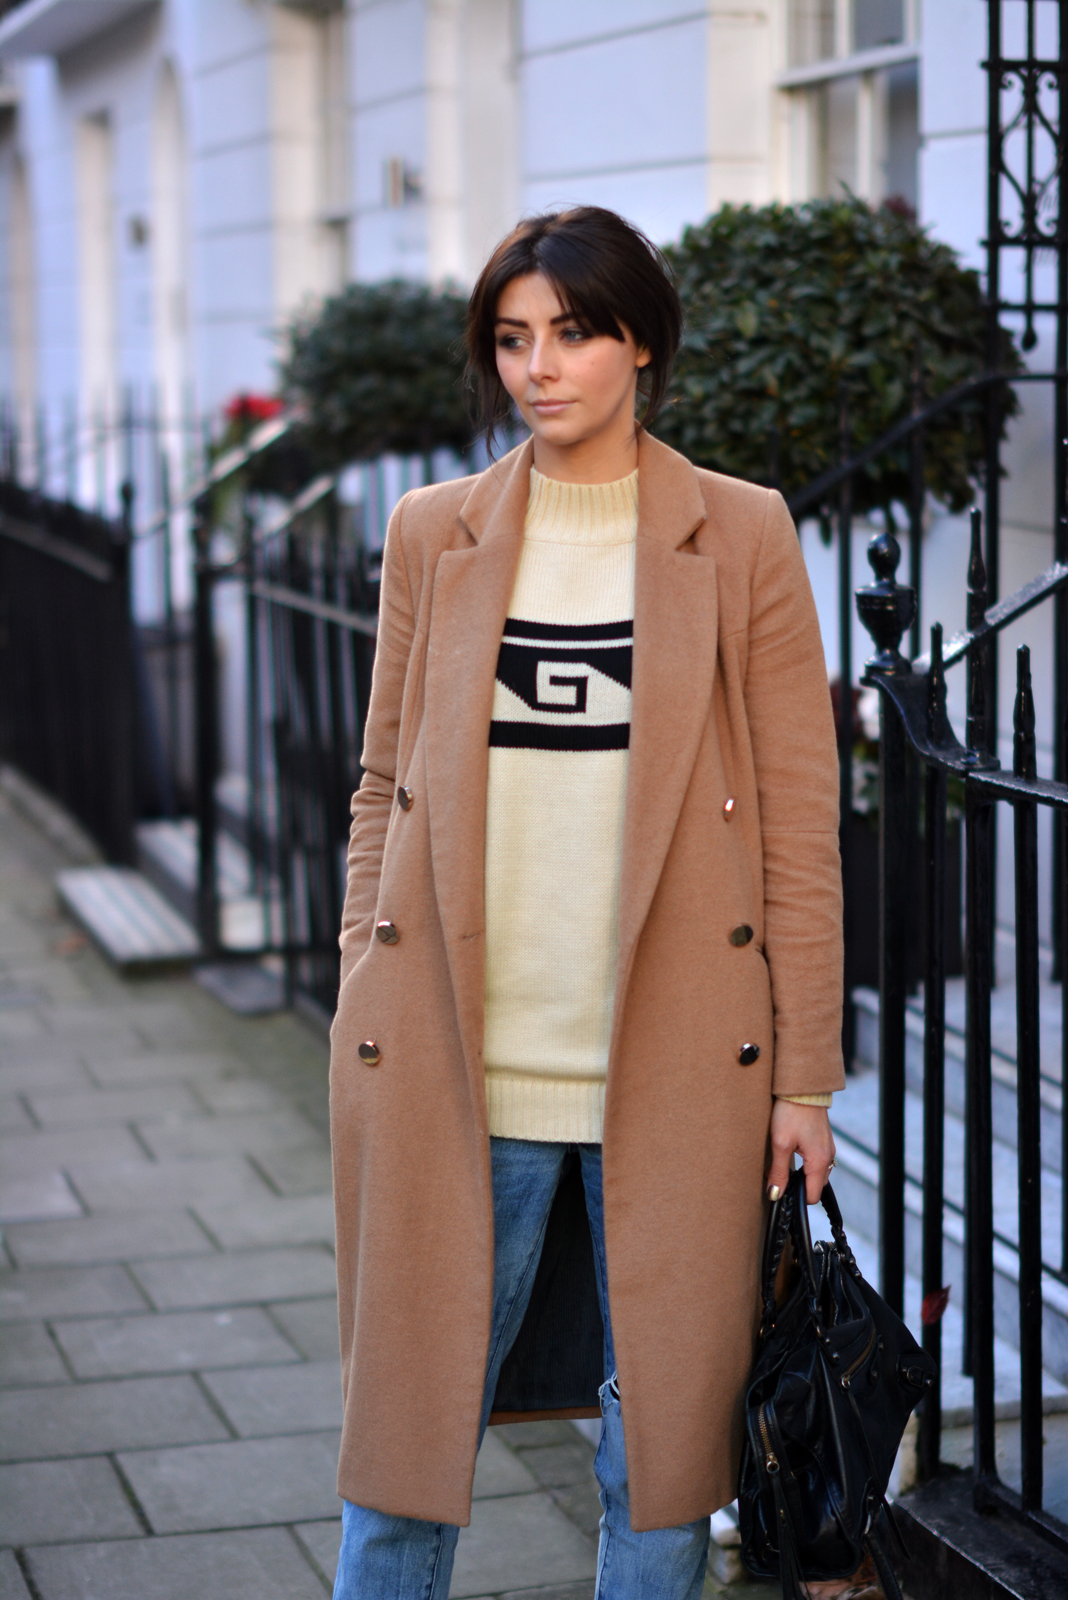 EJSTYLE - River Island Camel Double breasted coat, Forever 21 aztec jumper, Winter OOTD, london street style